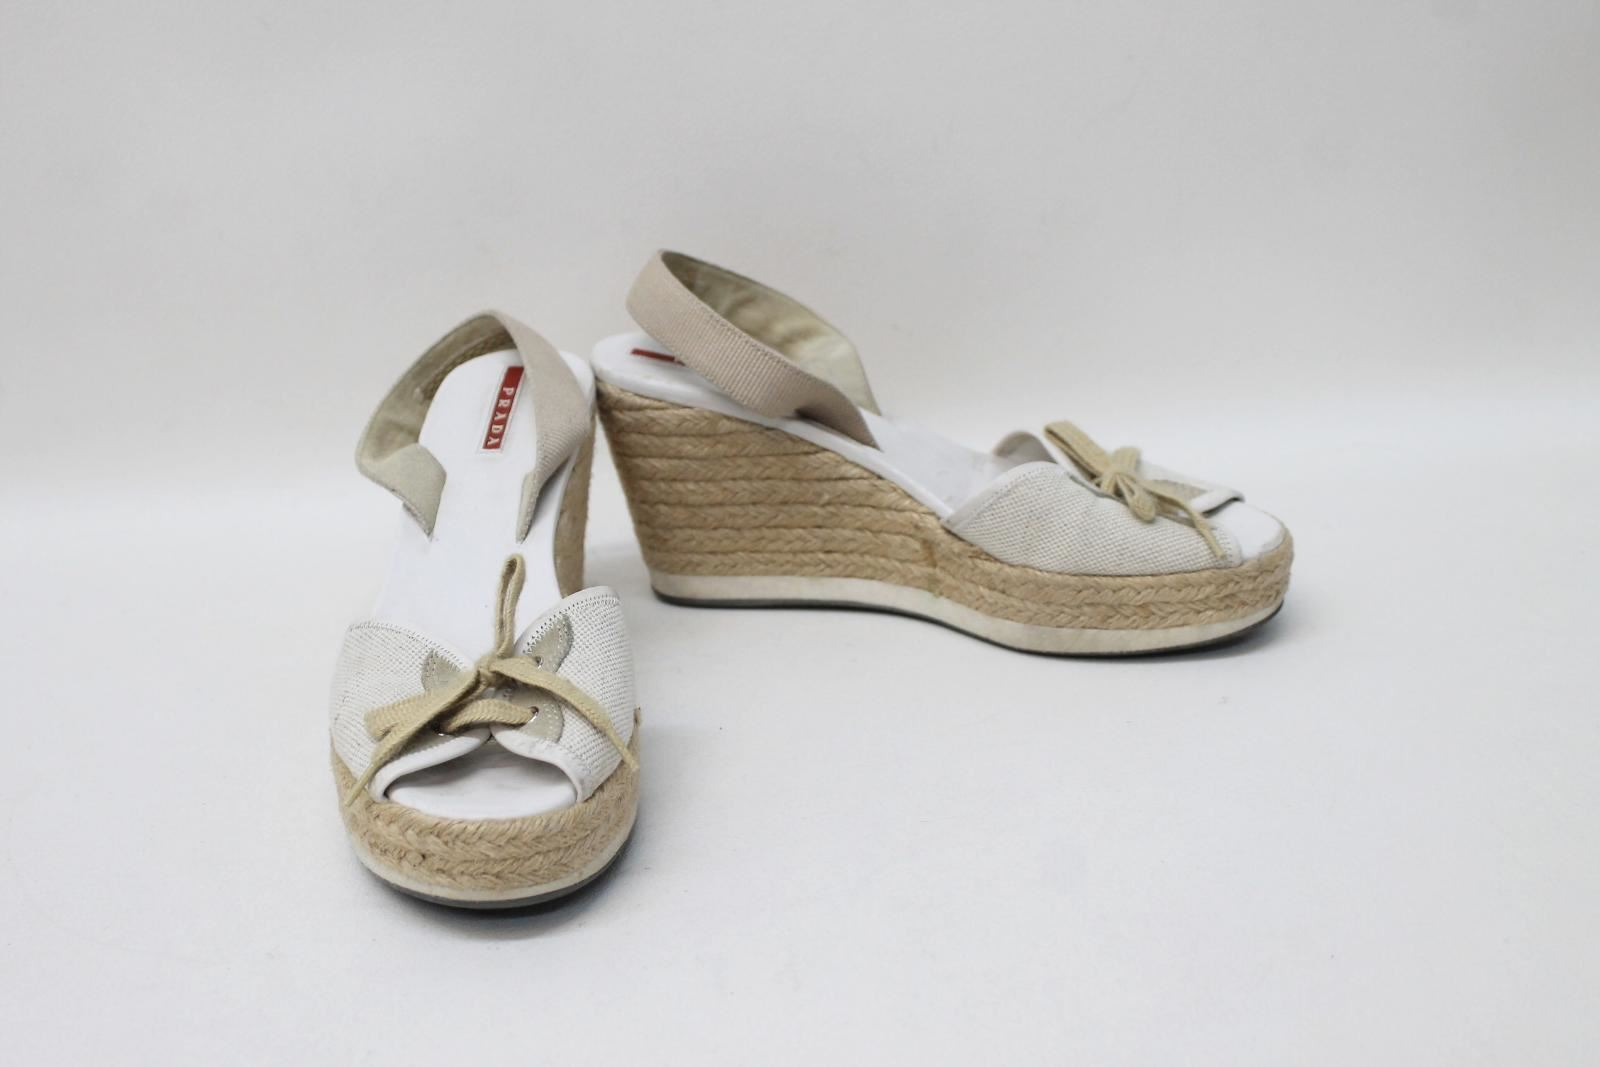 PRADA Ladies White Beige Platform Wedges Espadrille Sandals Size Approx. UK5